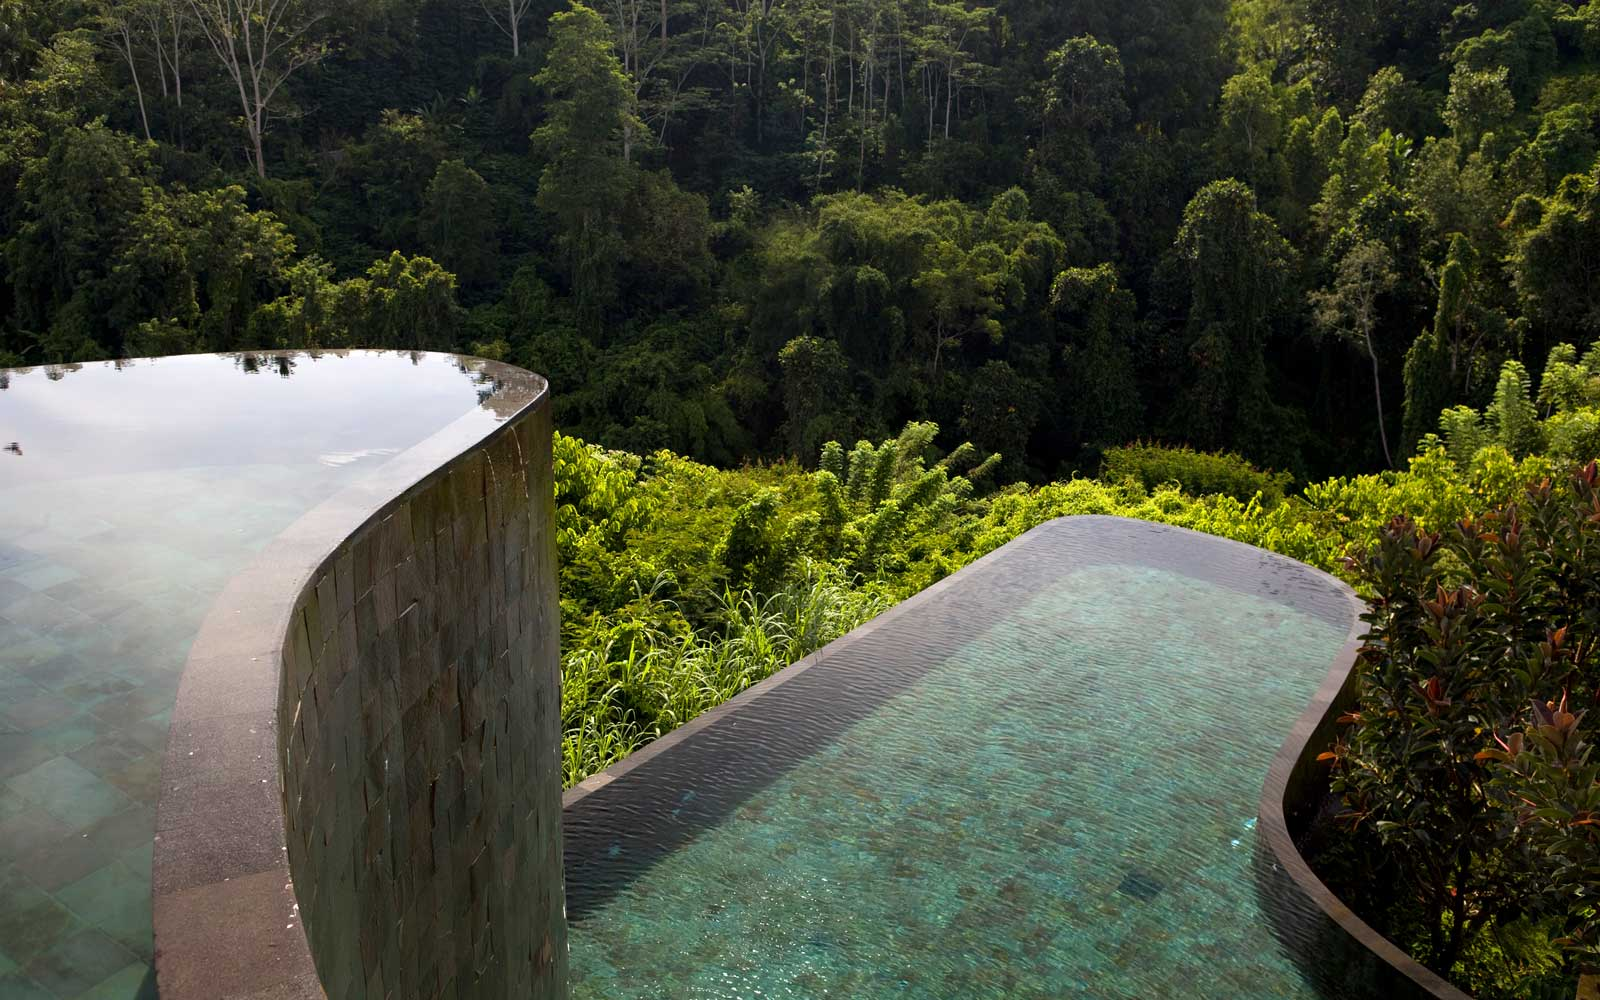 Instagram Couple Defend Photo Taken Dangling Over Edge in Bali, Say They've Taken More Dangerous Shots